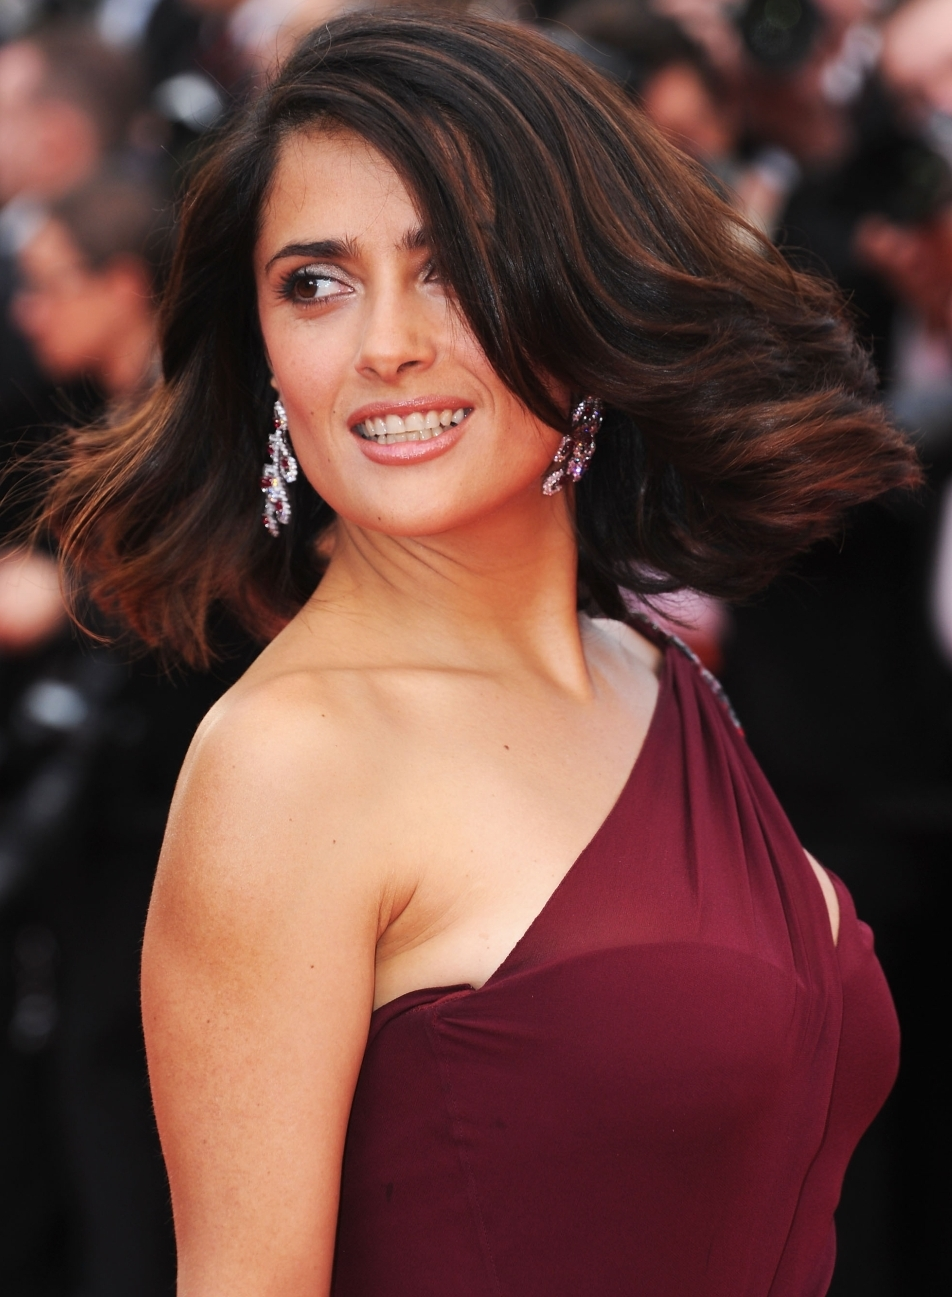 Elegant extravagant outrageous wild hair Style Versions Makeup for Virgo Women Salma Hayek-12